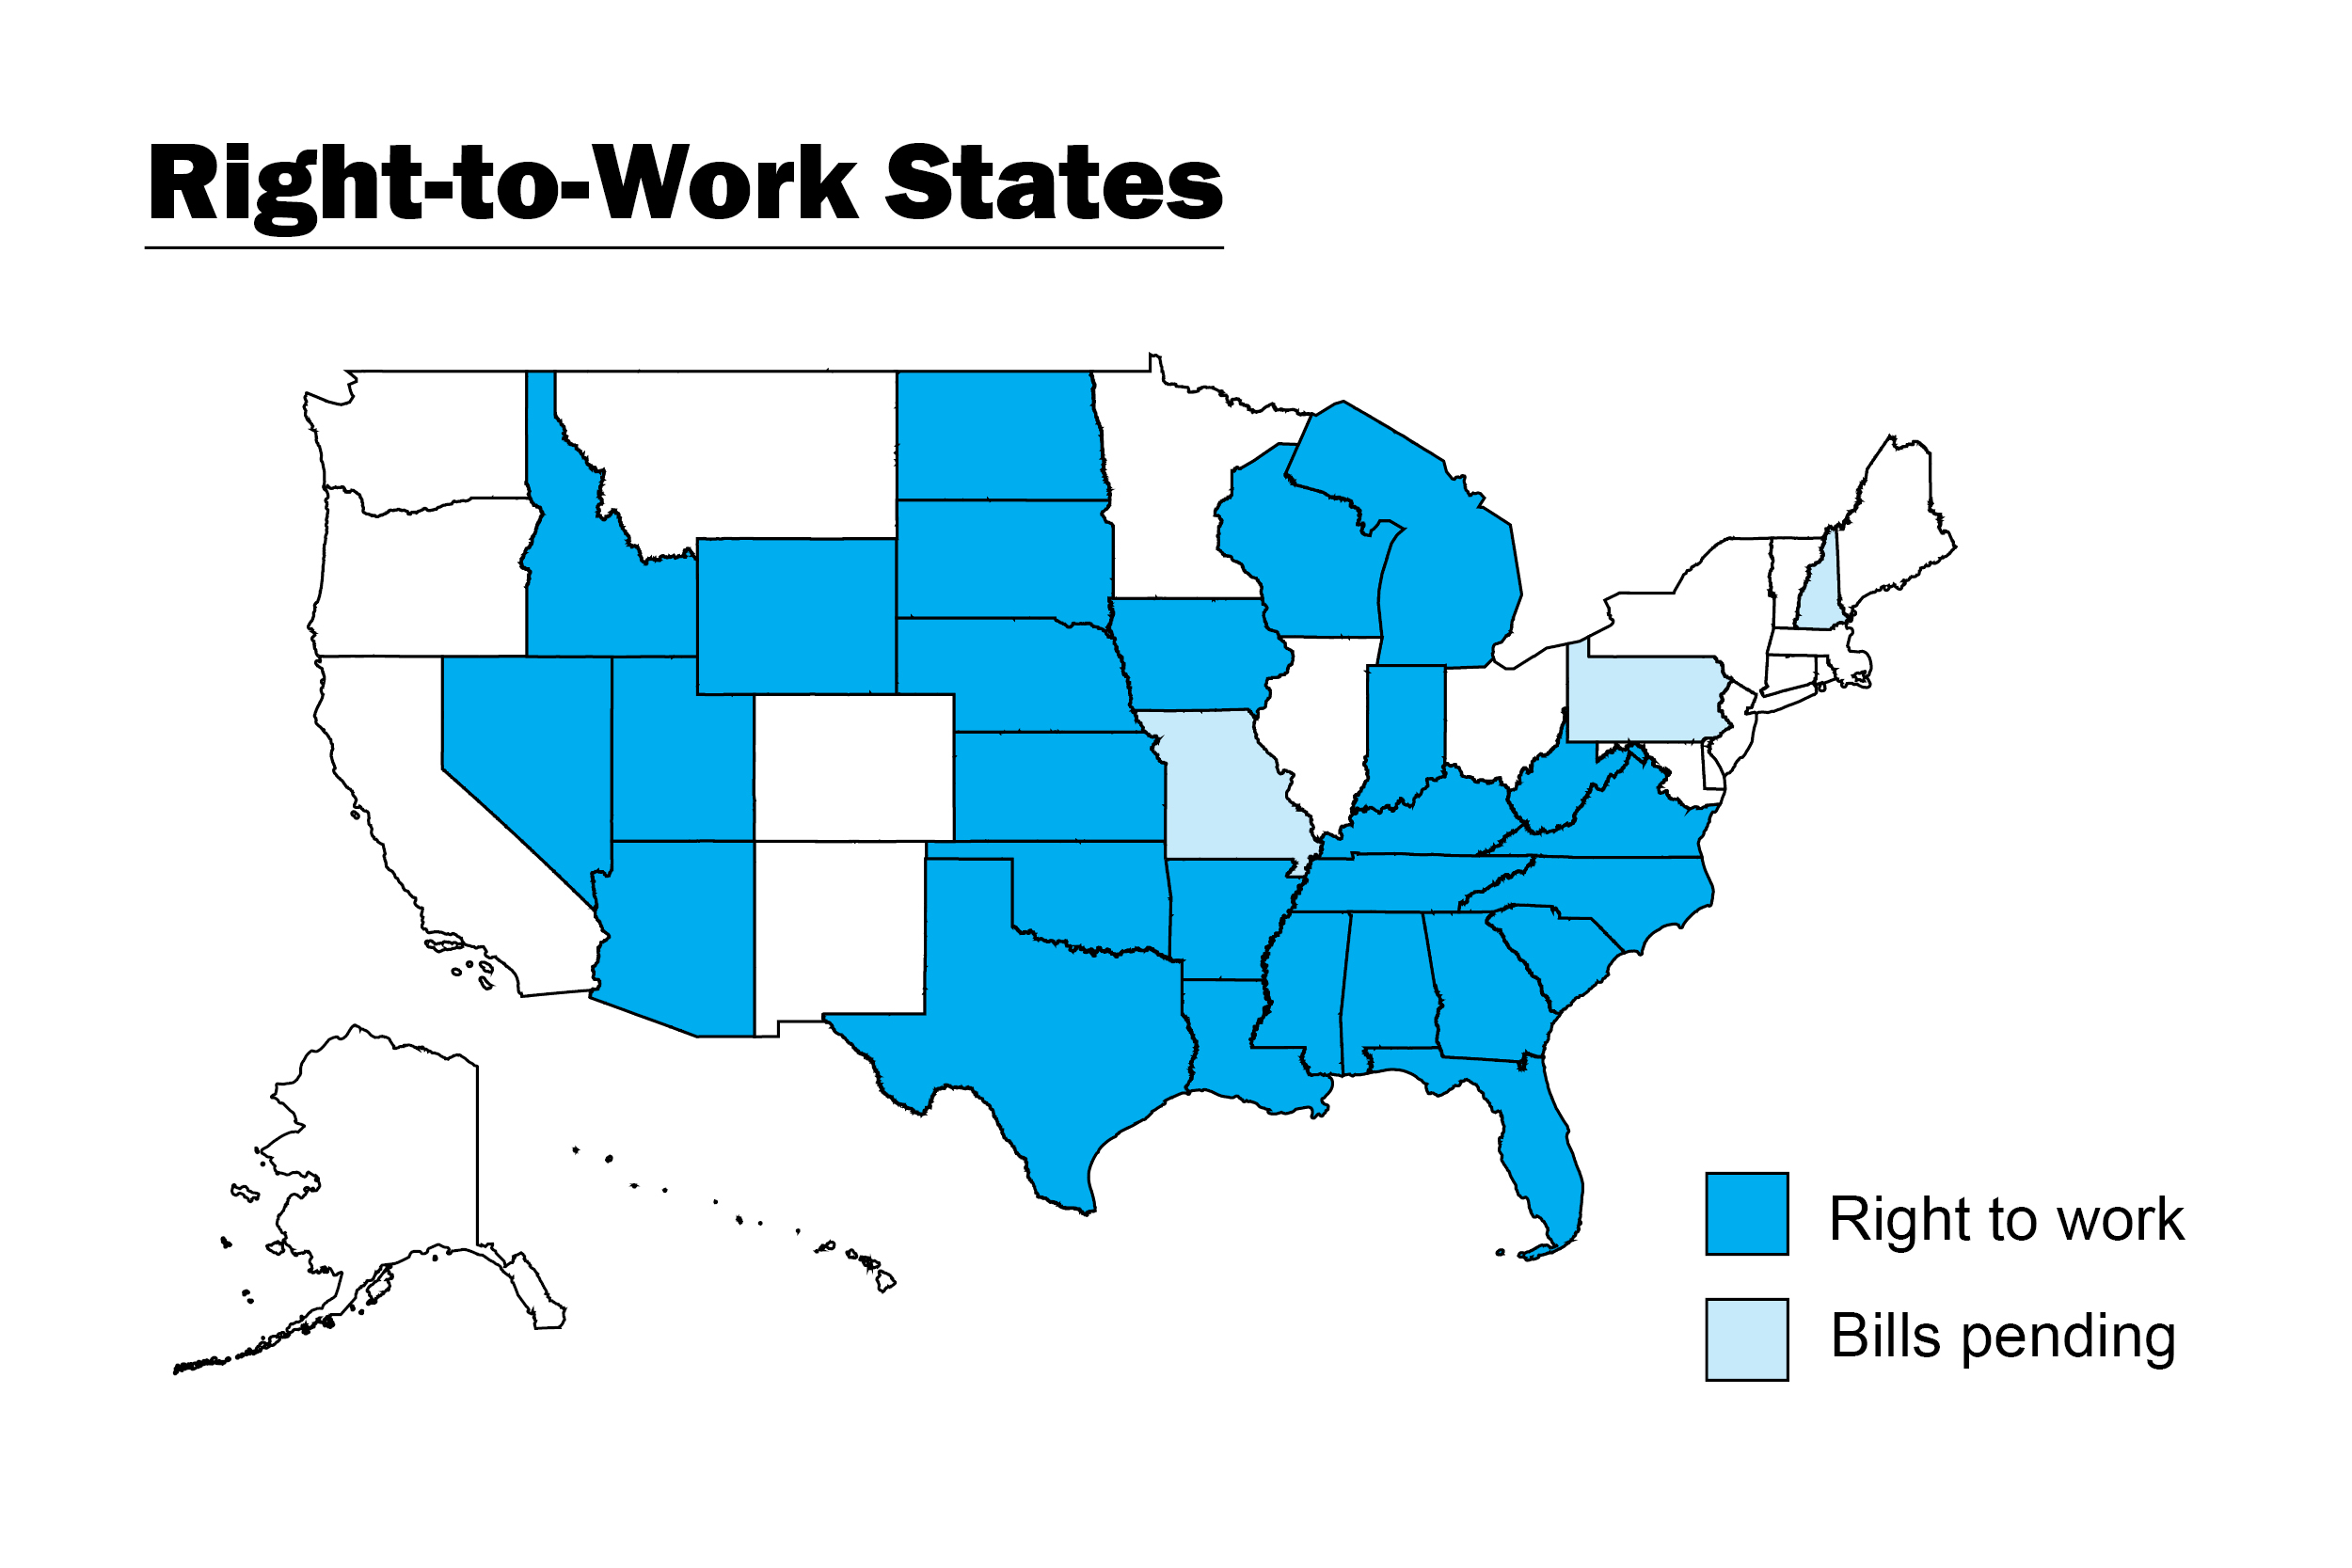 Right To Work States Vs Union States Map.Five Steps To Maintain Unity And Membership Under Right To Work